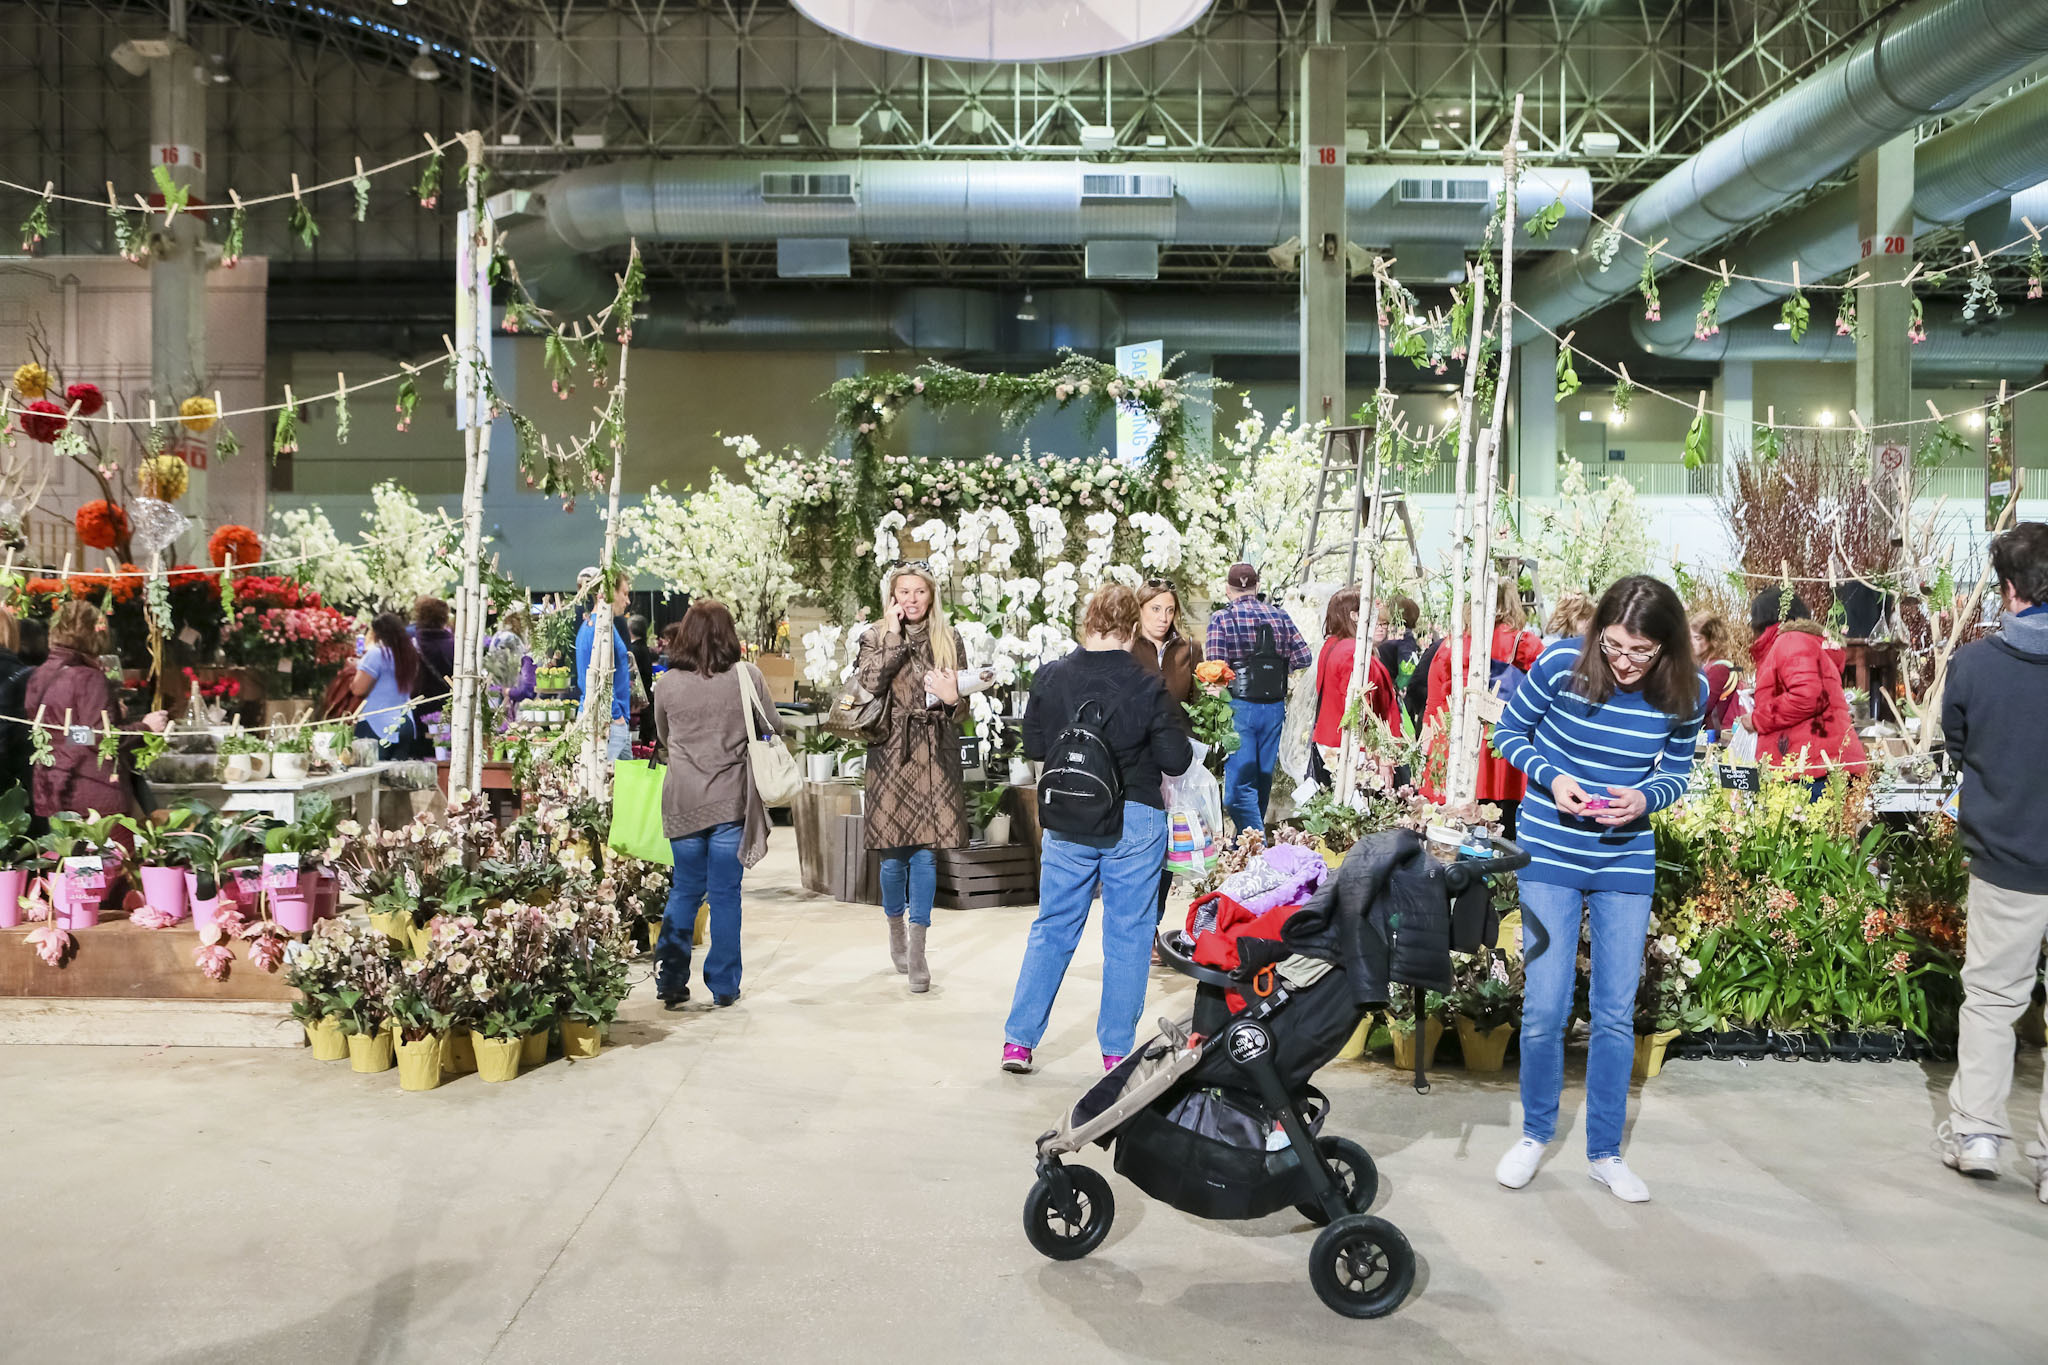 Photos From The Chicago Flower Garden Show At Navy Pier